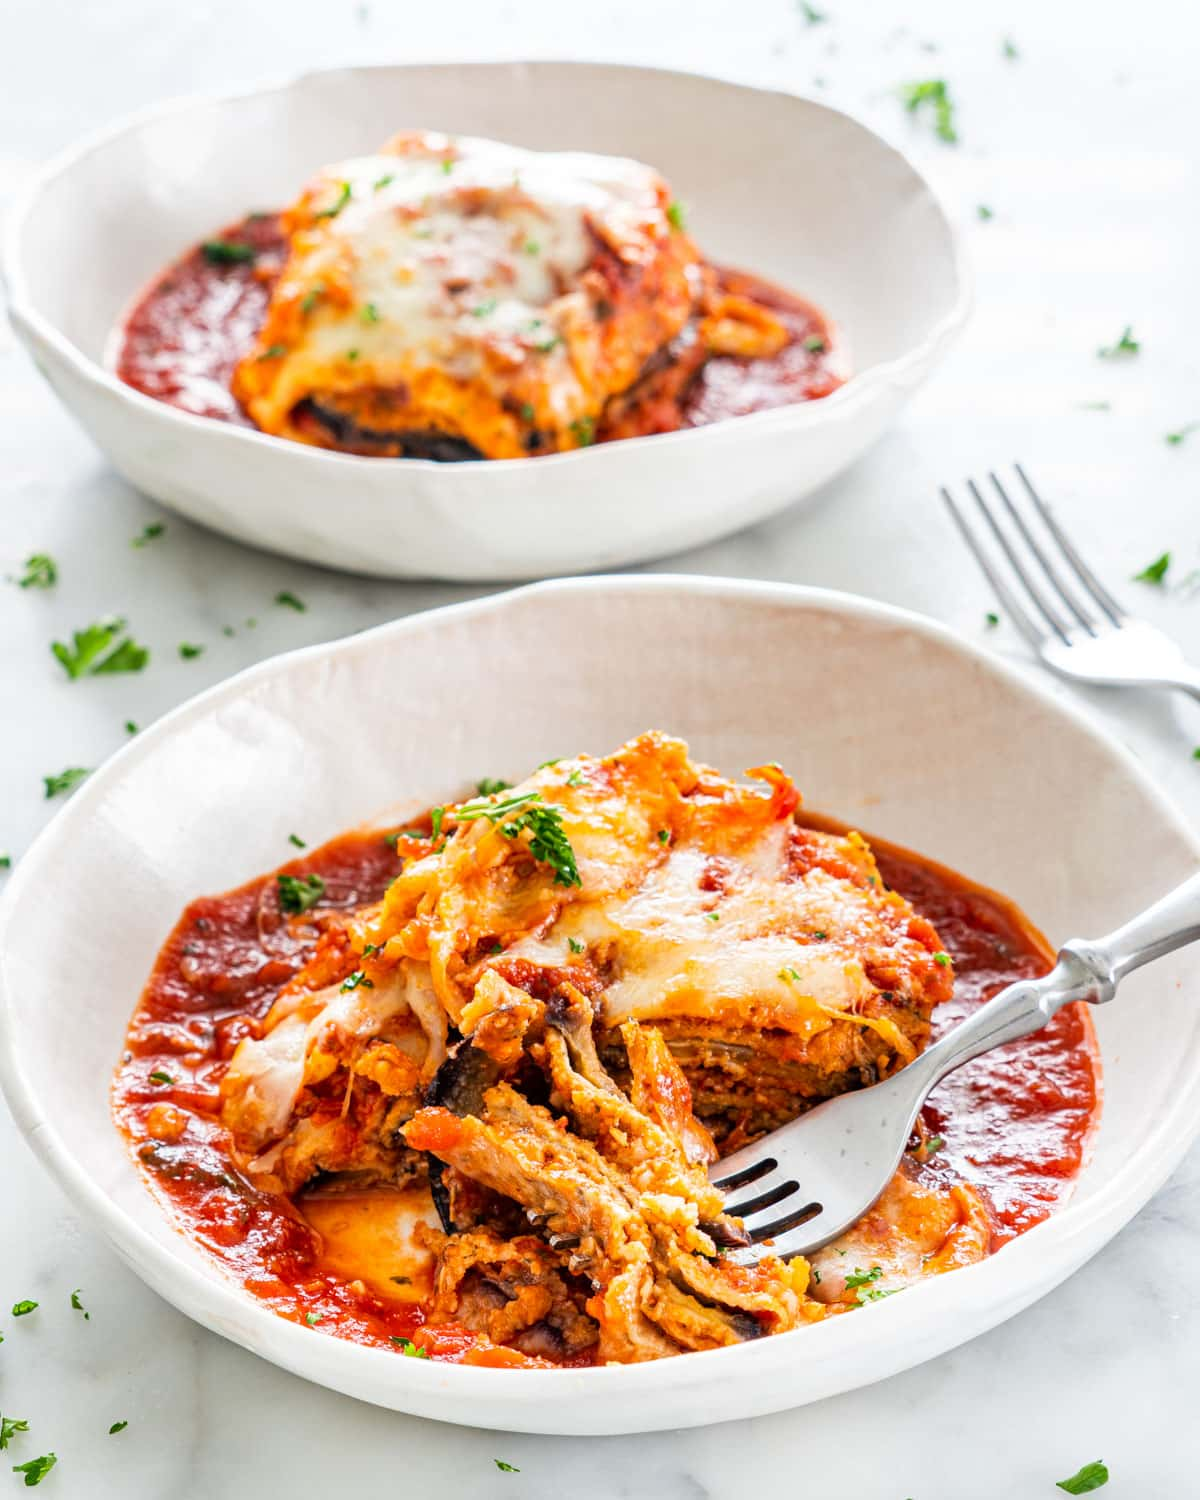 side view shot of a piece of eggplant parmesan with marinara sauce in a white plate garnished with parsley and a piece cut out and held by a fork